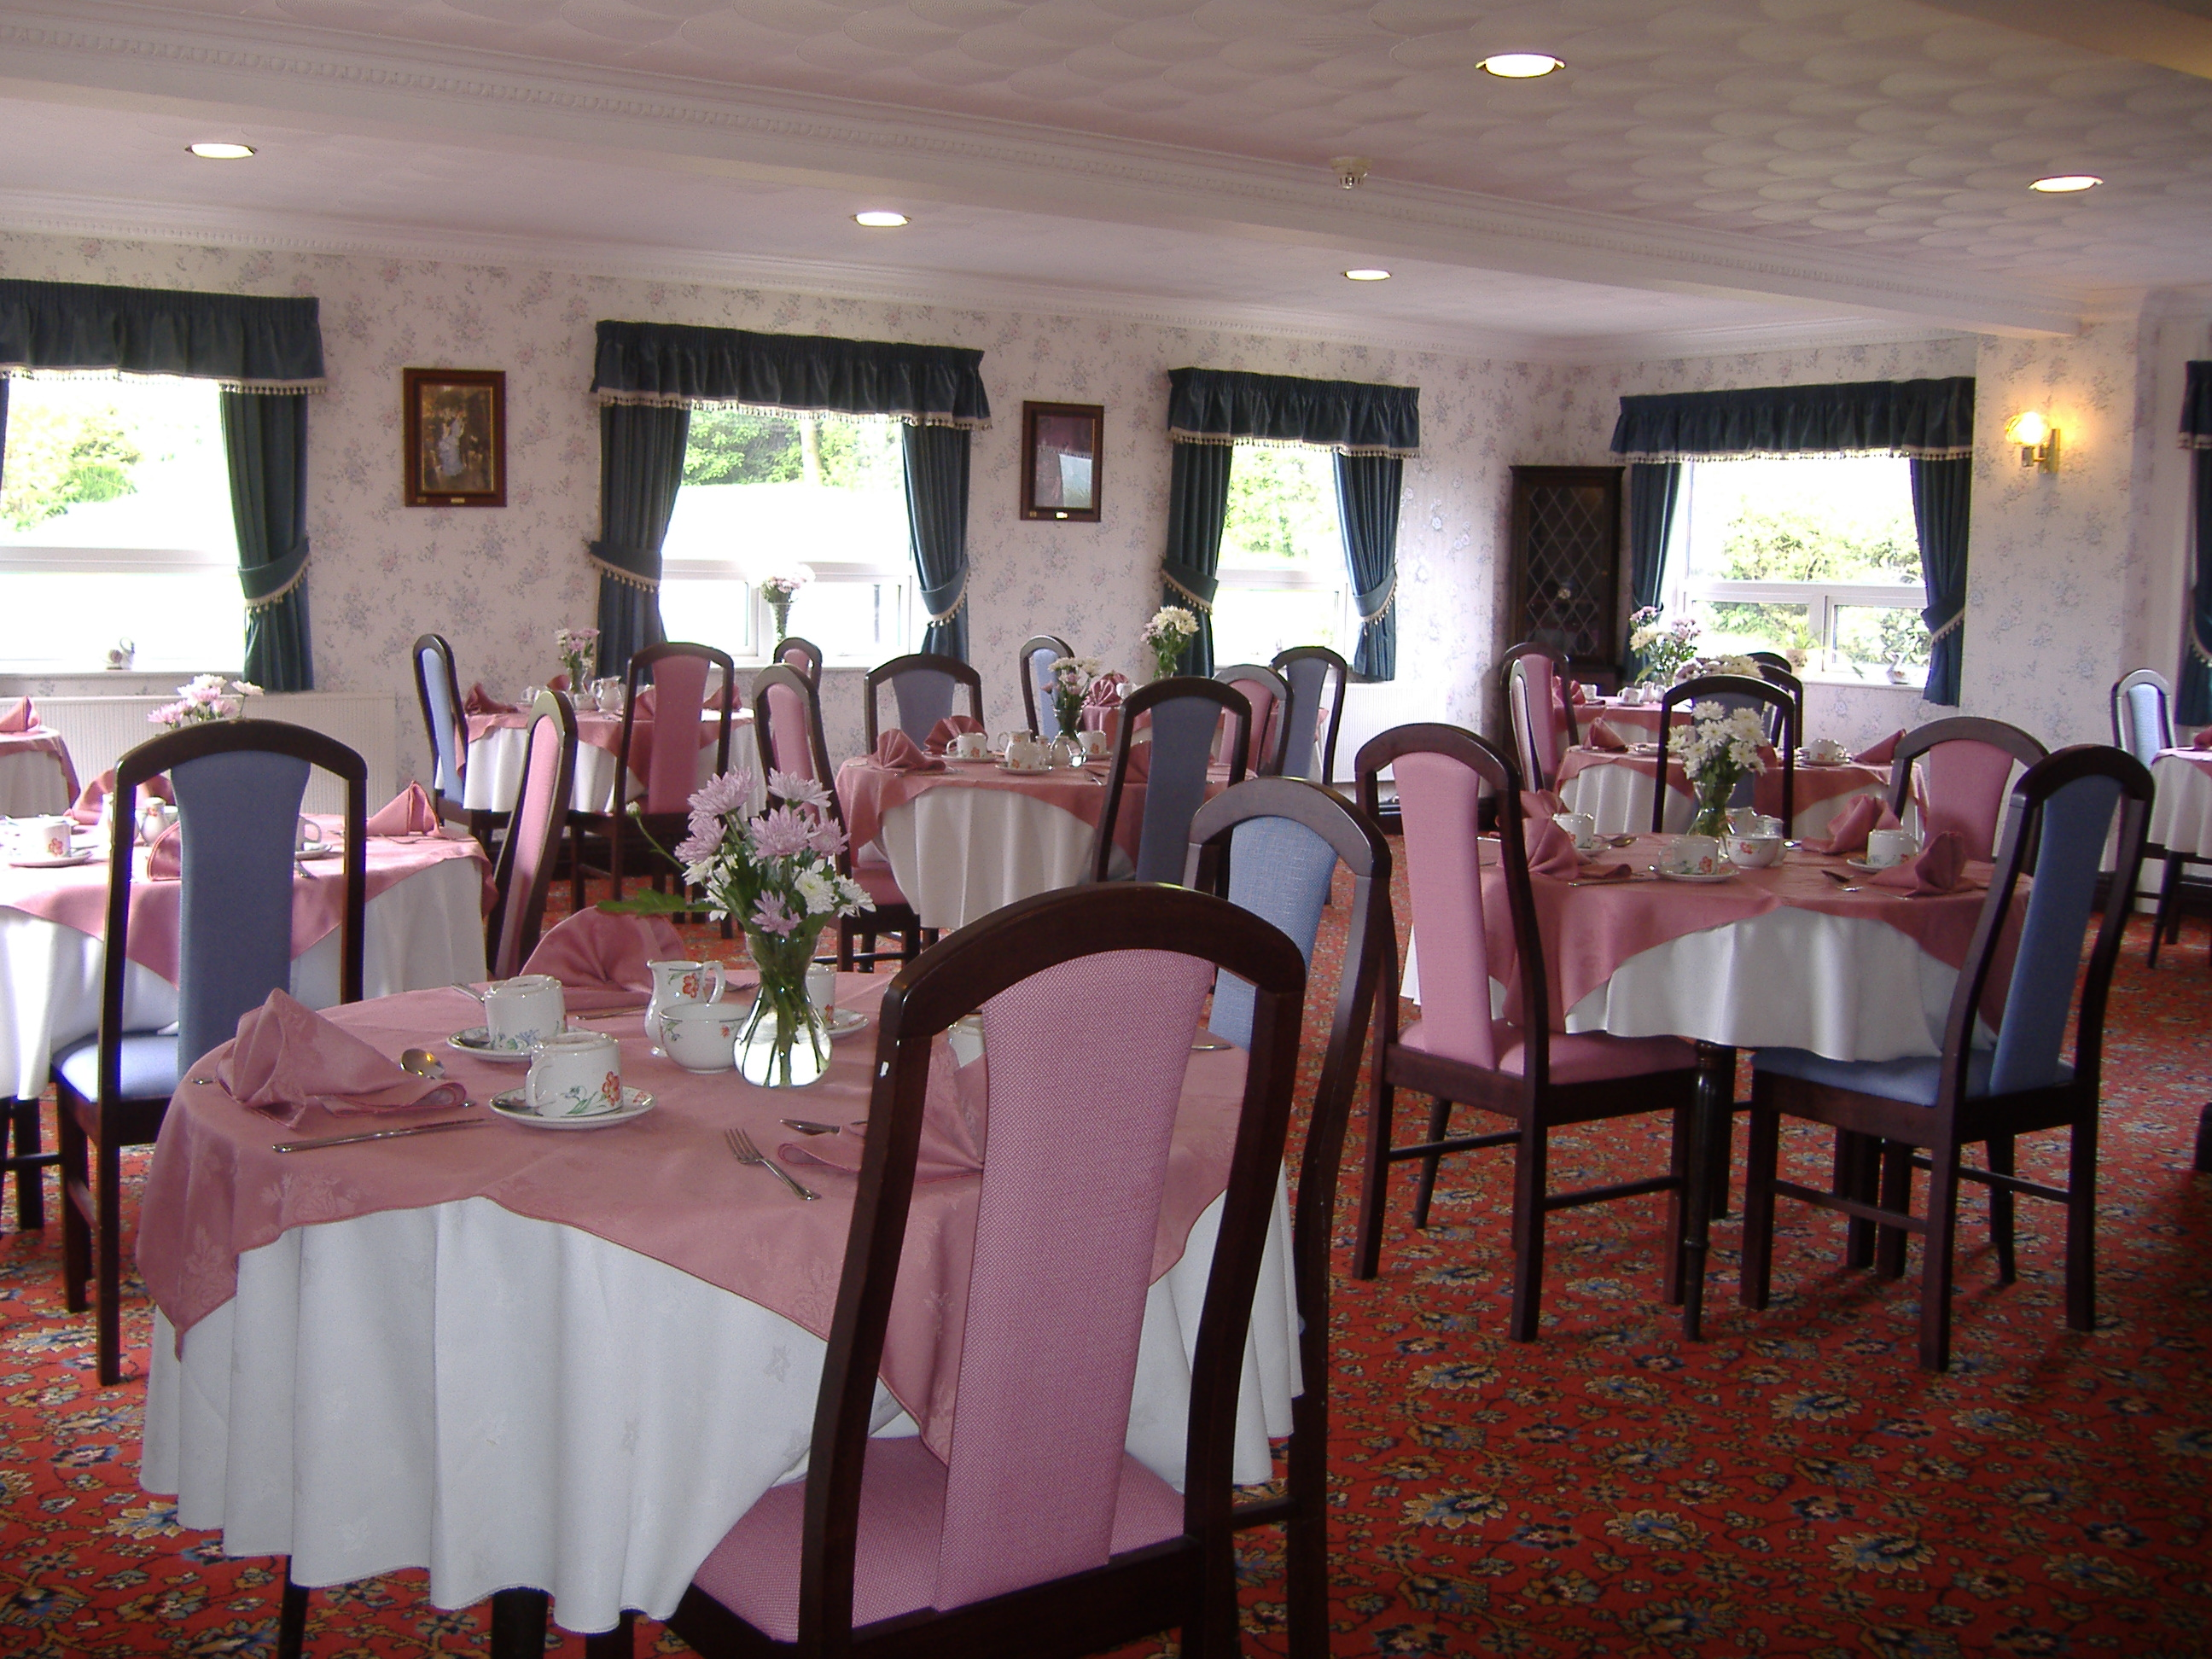 Top Nursing Home Dining Room 2592 x 1944 · 1688 kB · jpeg